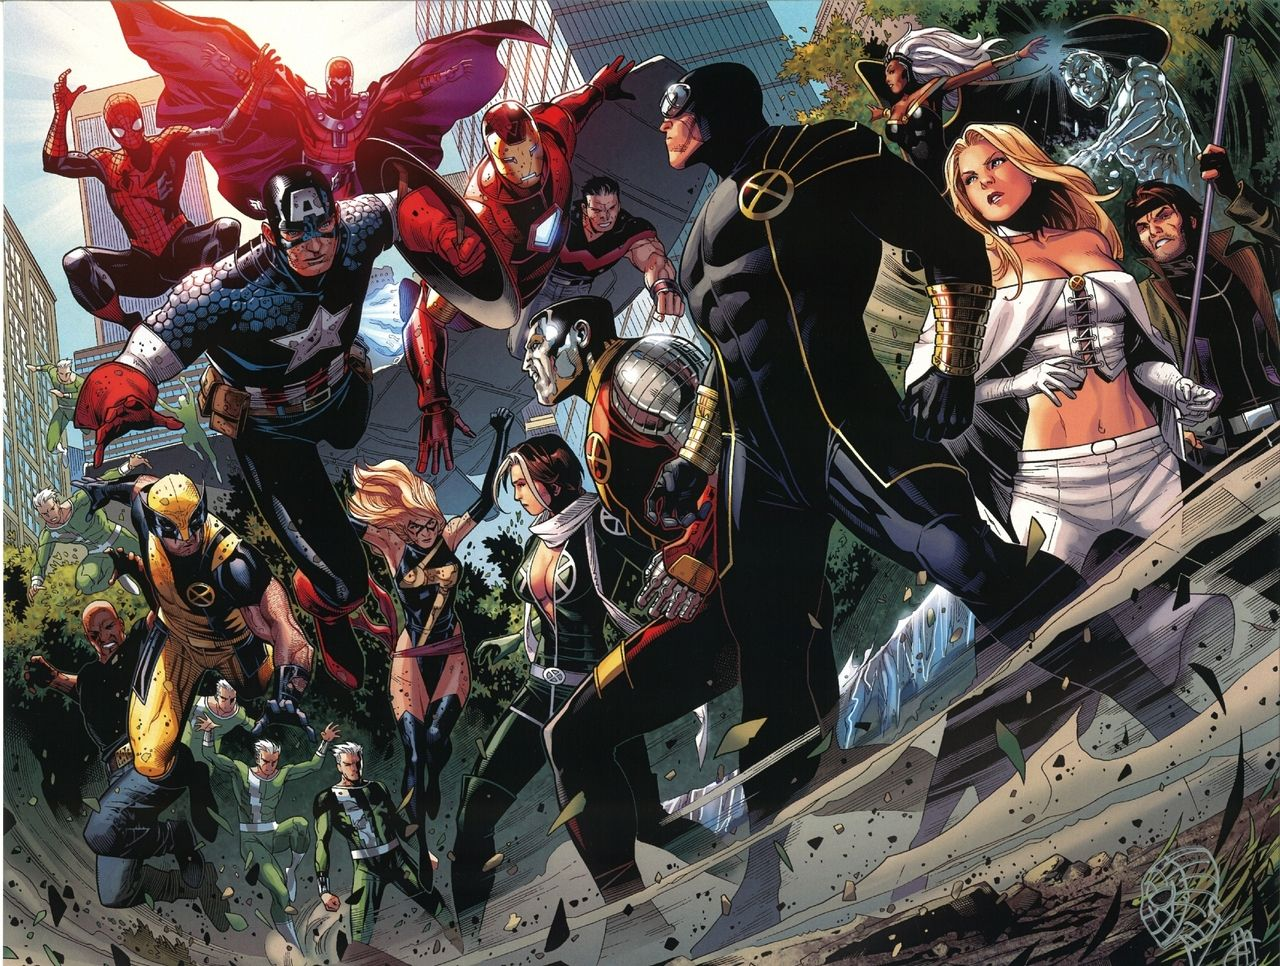 Avengers Vs X Men Illustrations By Jim Cheung I Have This Print Signed In My Den Marvel Comic Books Wolverine Marvel Marvel Events